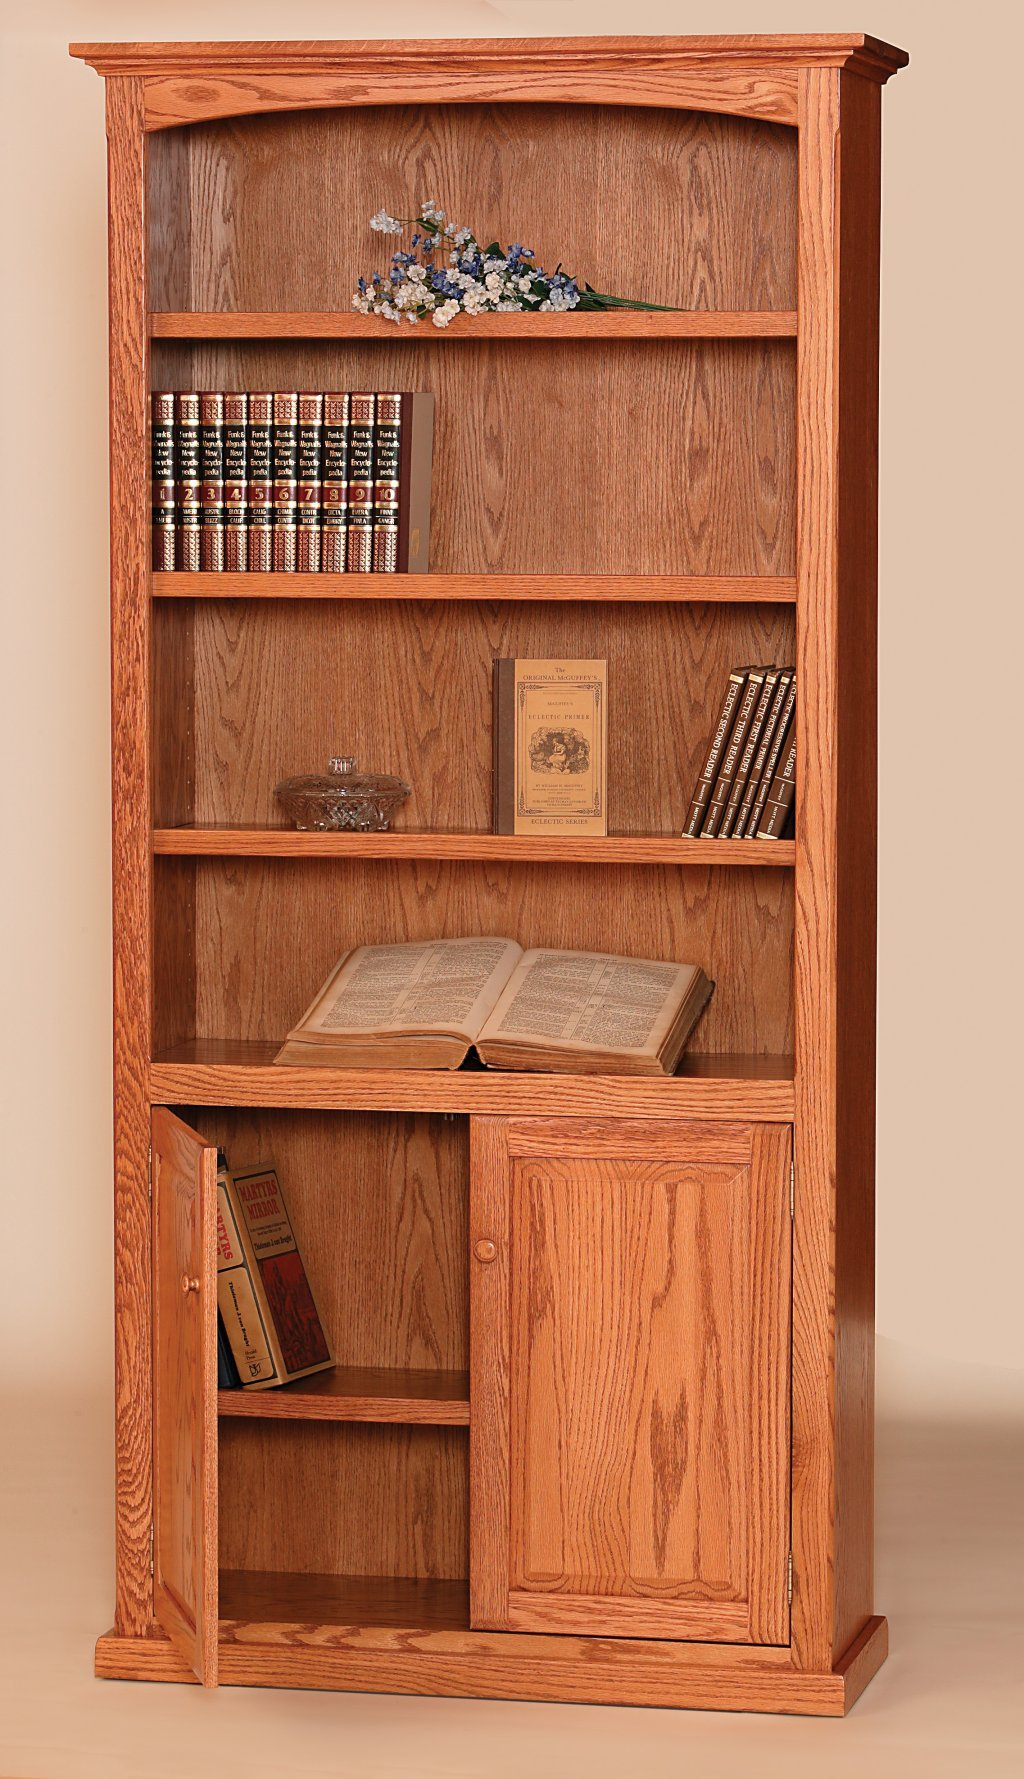 #A44B27 Dutch Boy Furniture Bookcases with 1024x1779 px of Brand New Furniture Book Shelves 17791024 pic @ avoidforclosure.info